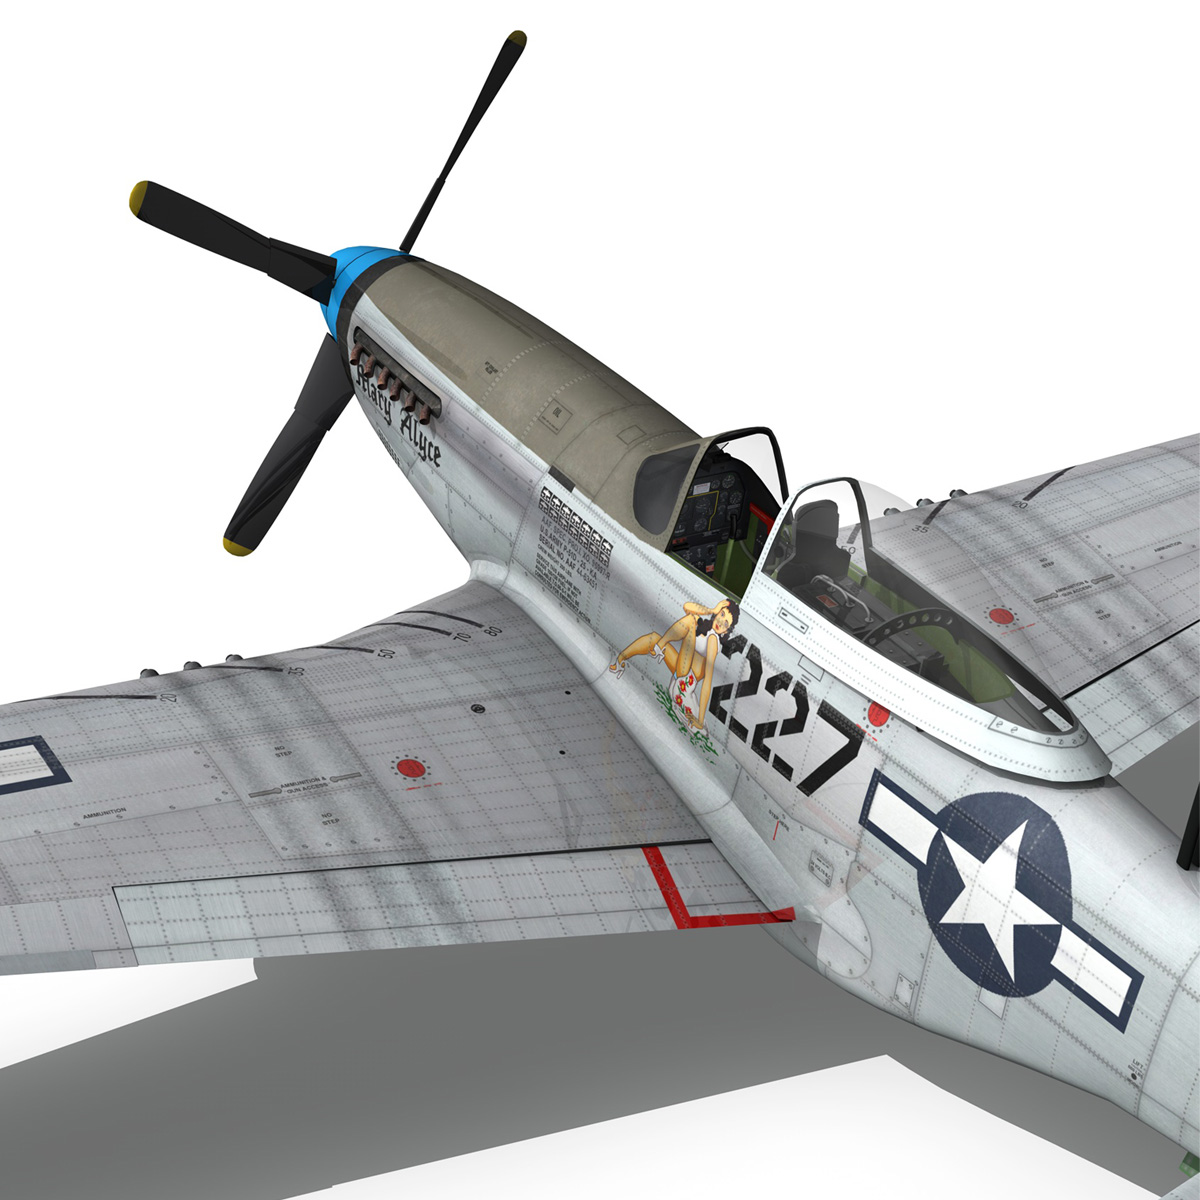 north american p-51d – mustang – mary alyce 3d model 3ds fbx c4d lwo obj 267583